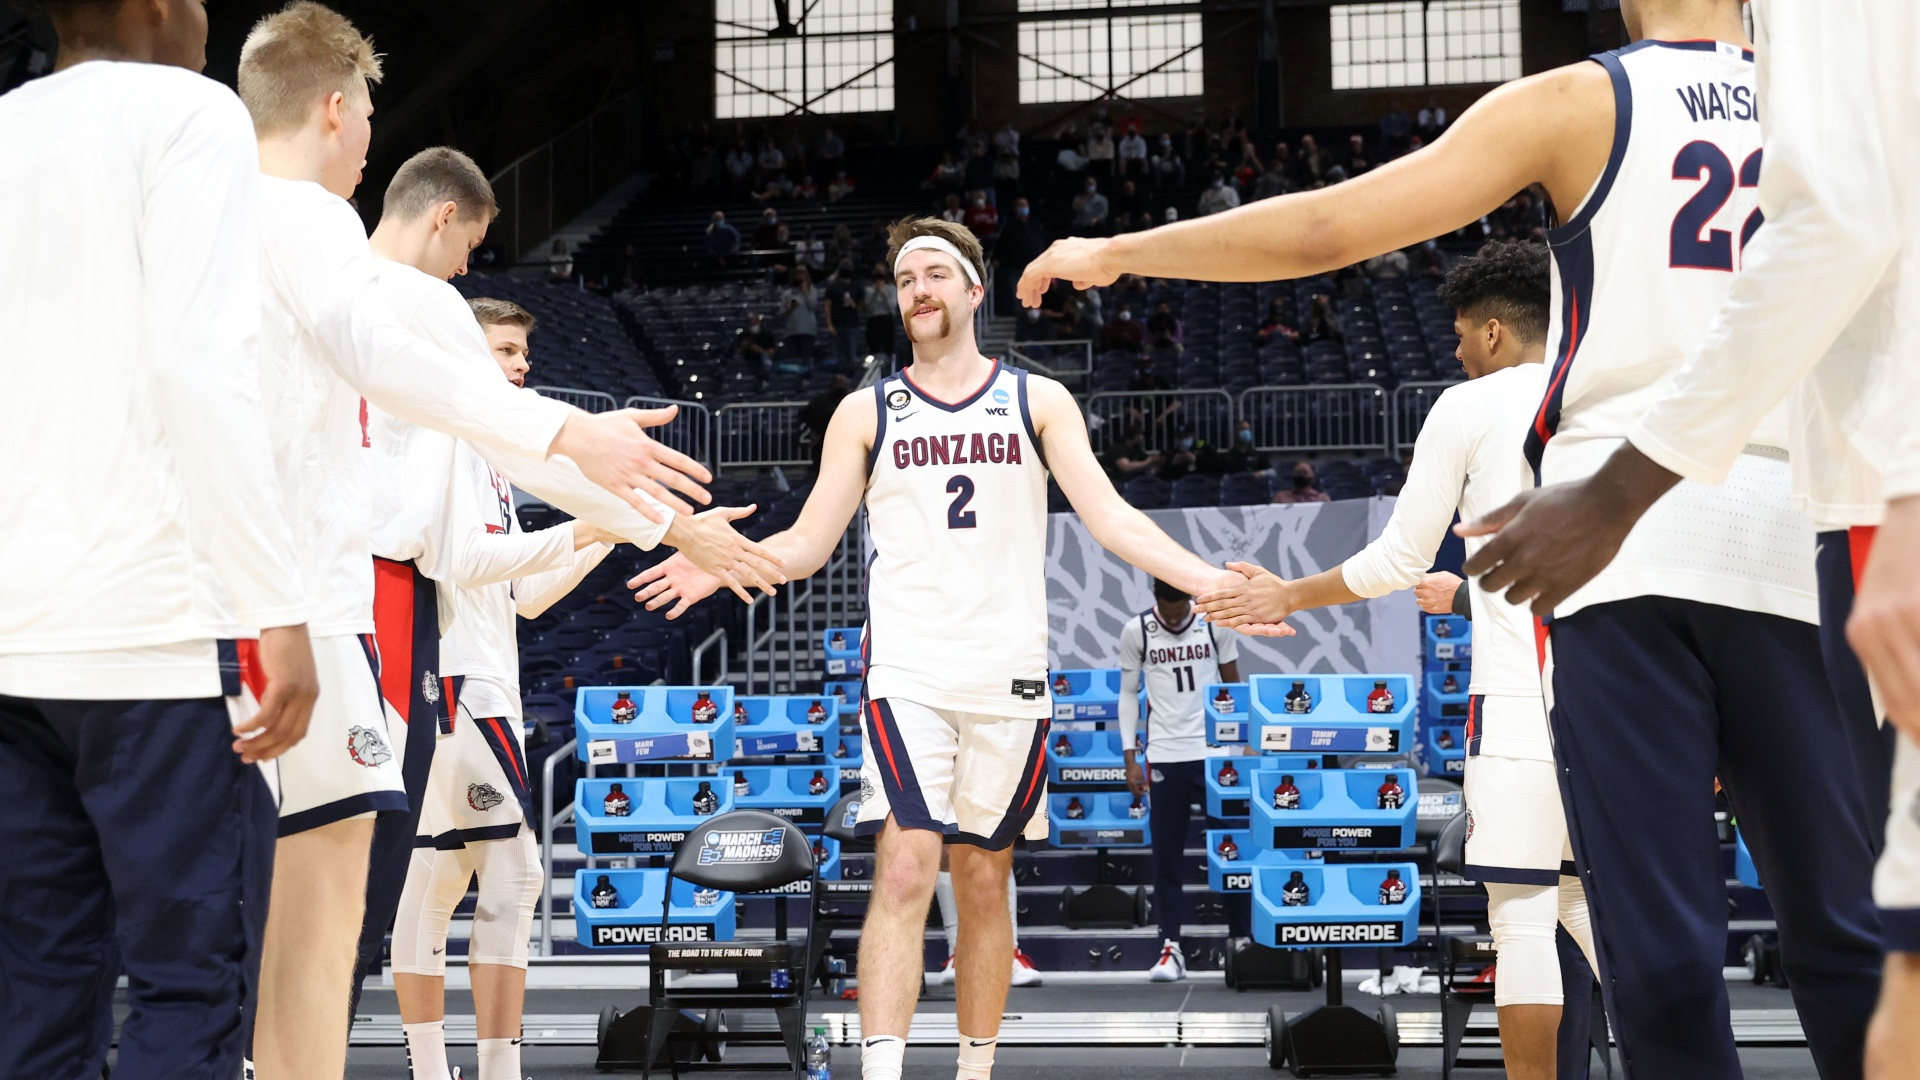 Gonzaga vs.  USC picks, options, predictions for the March Madness Elite Eight match